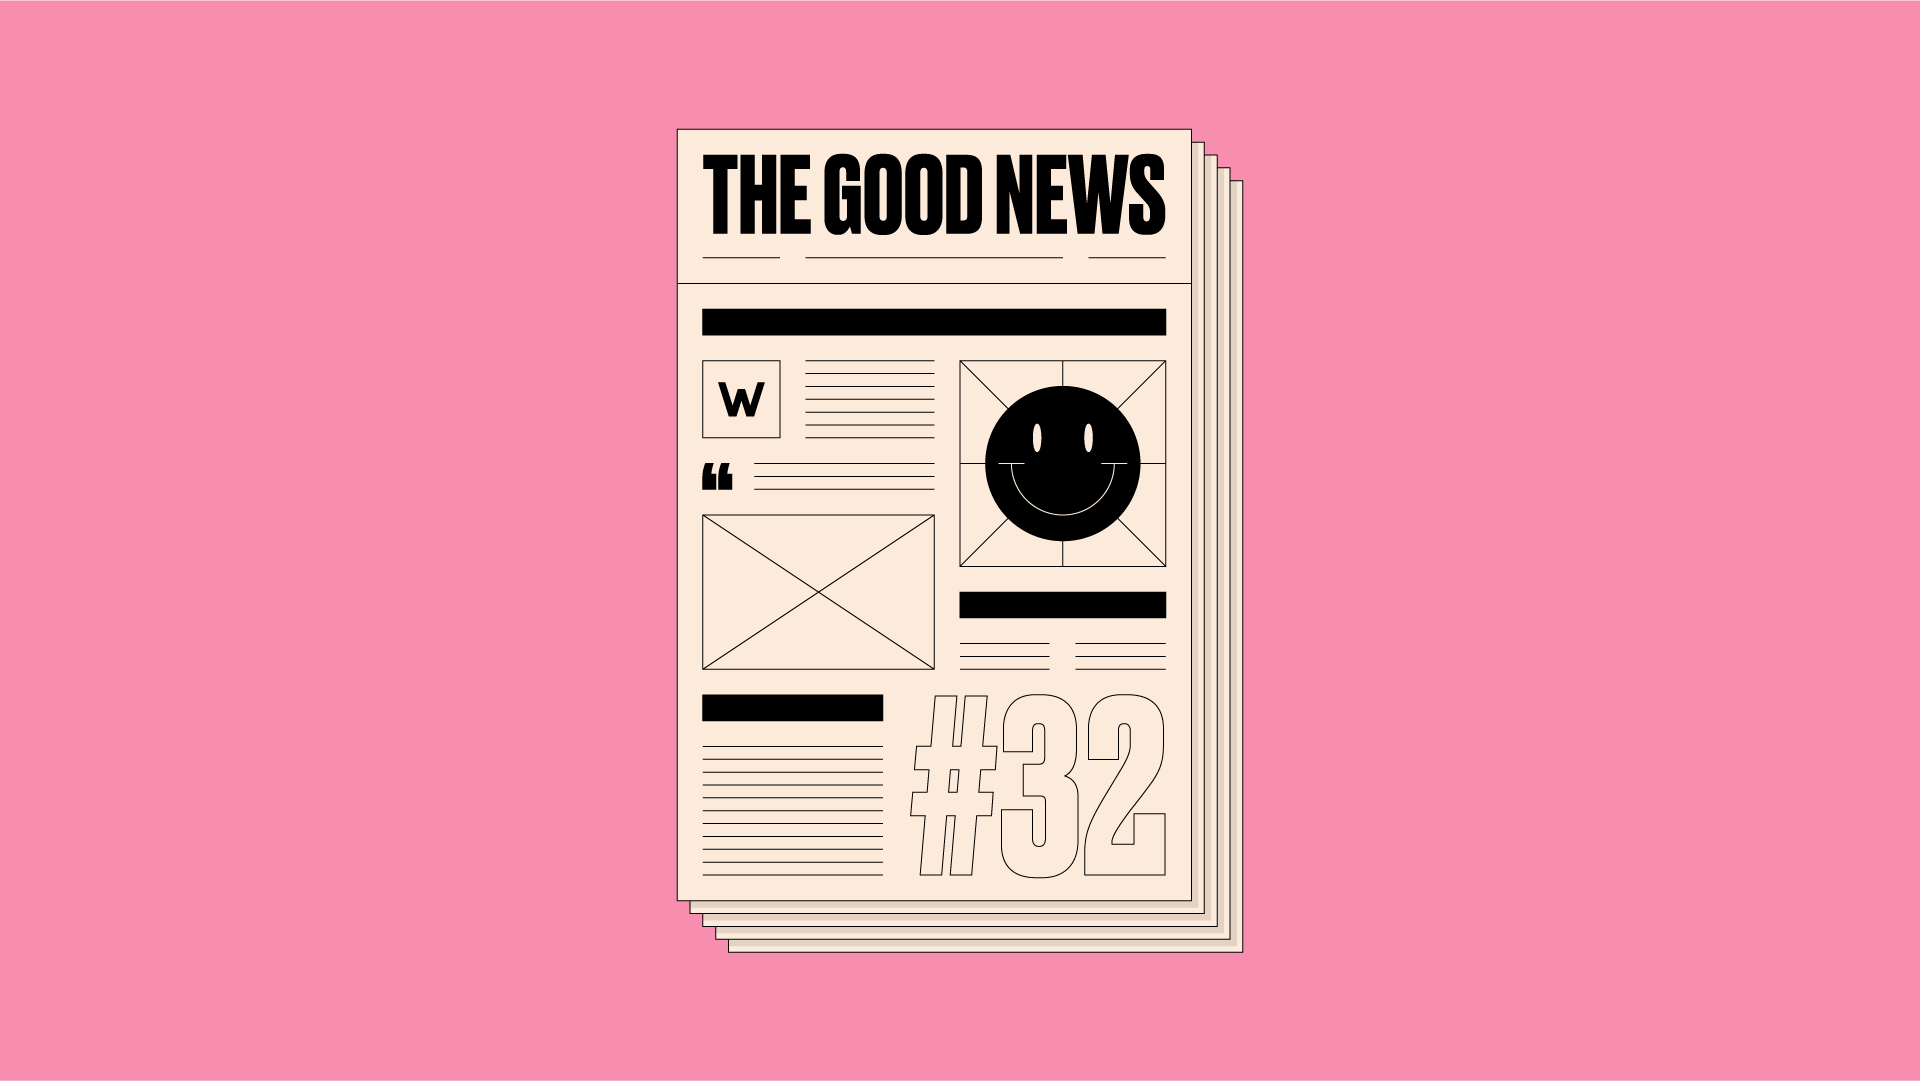 Newspaper front page on pink background, with 'The Good News #32' written on it.